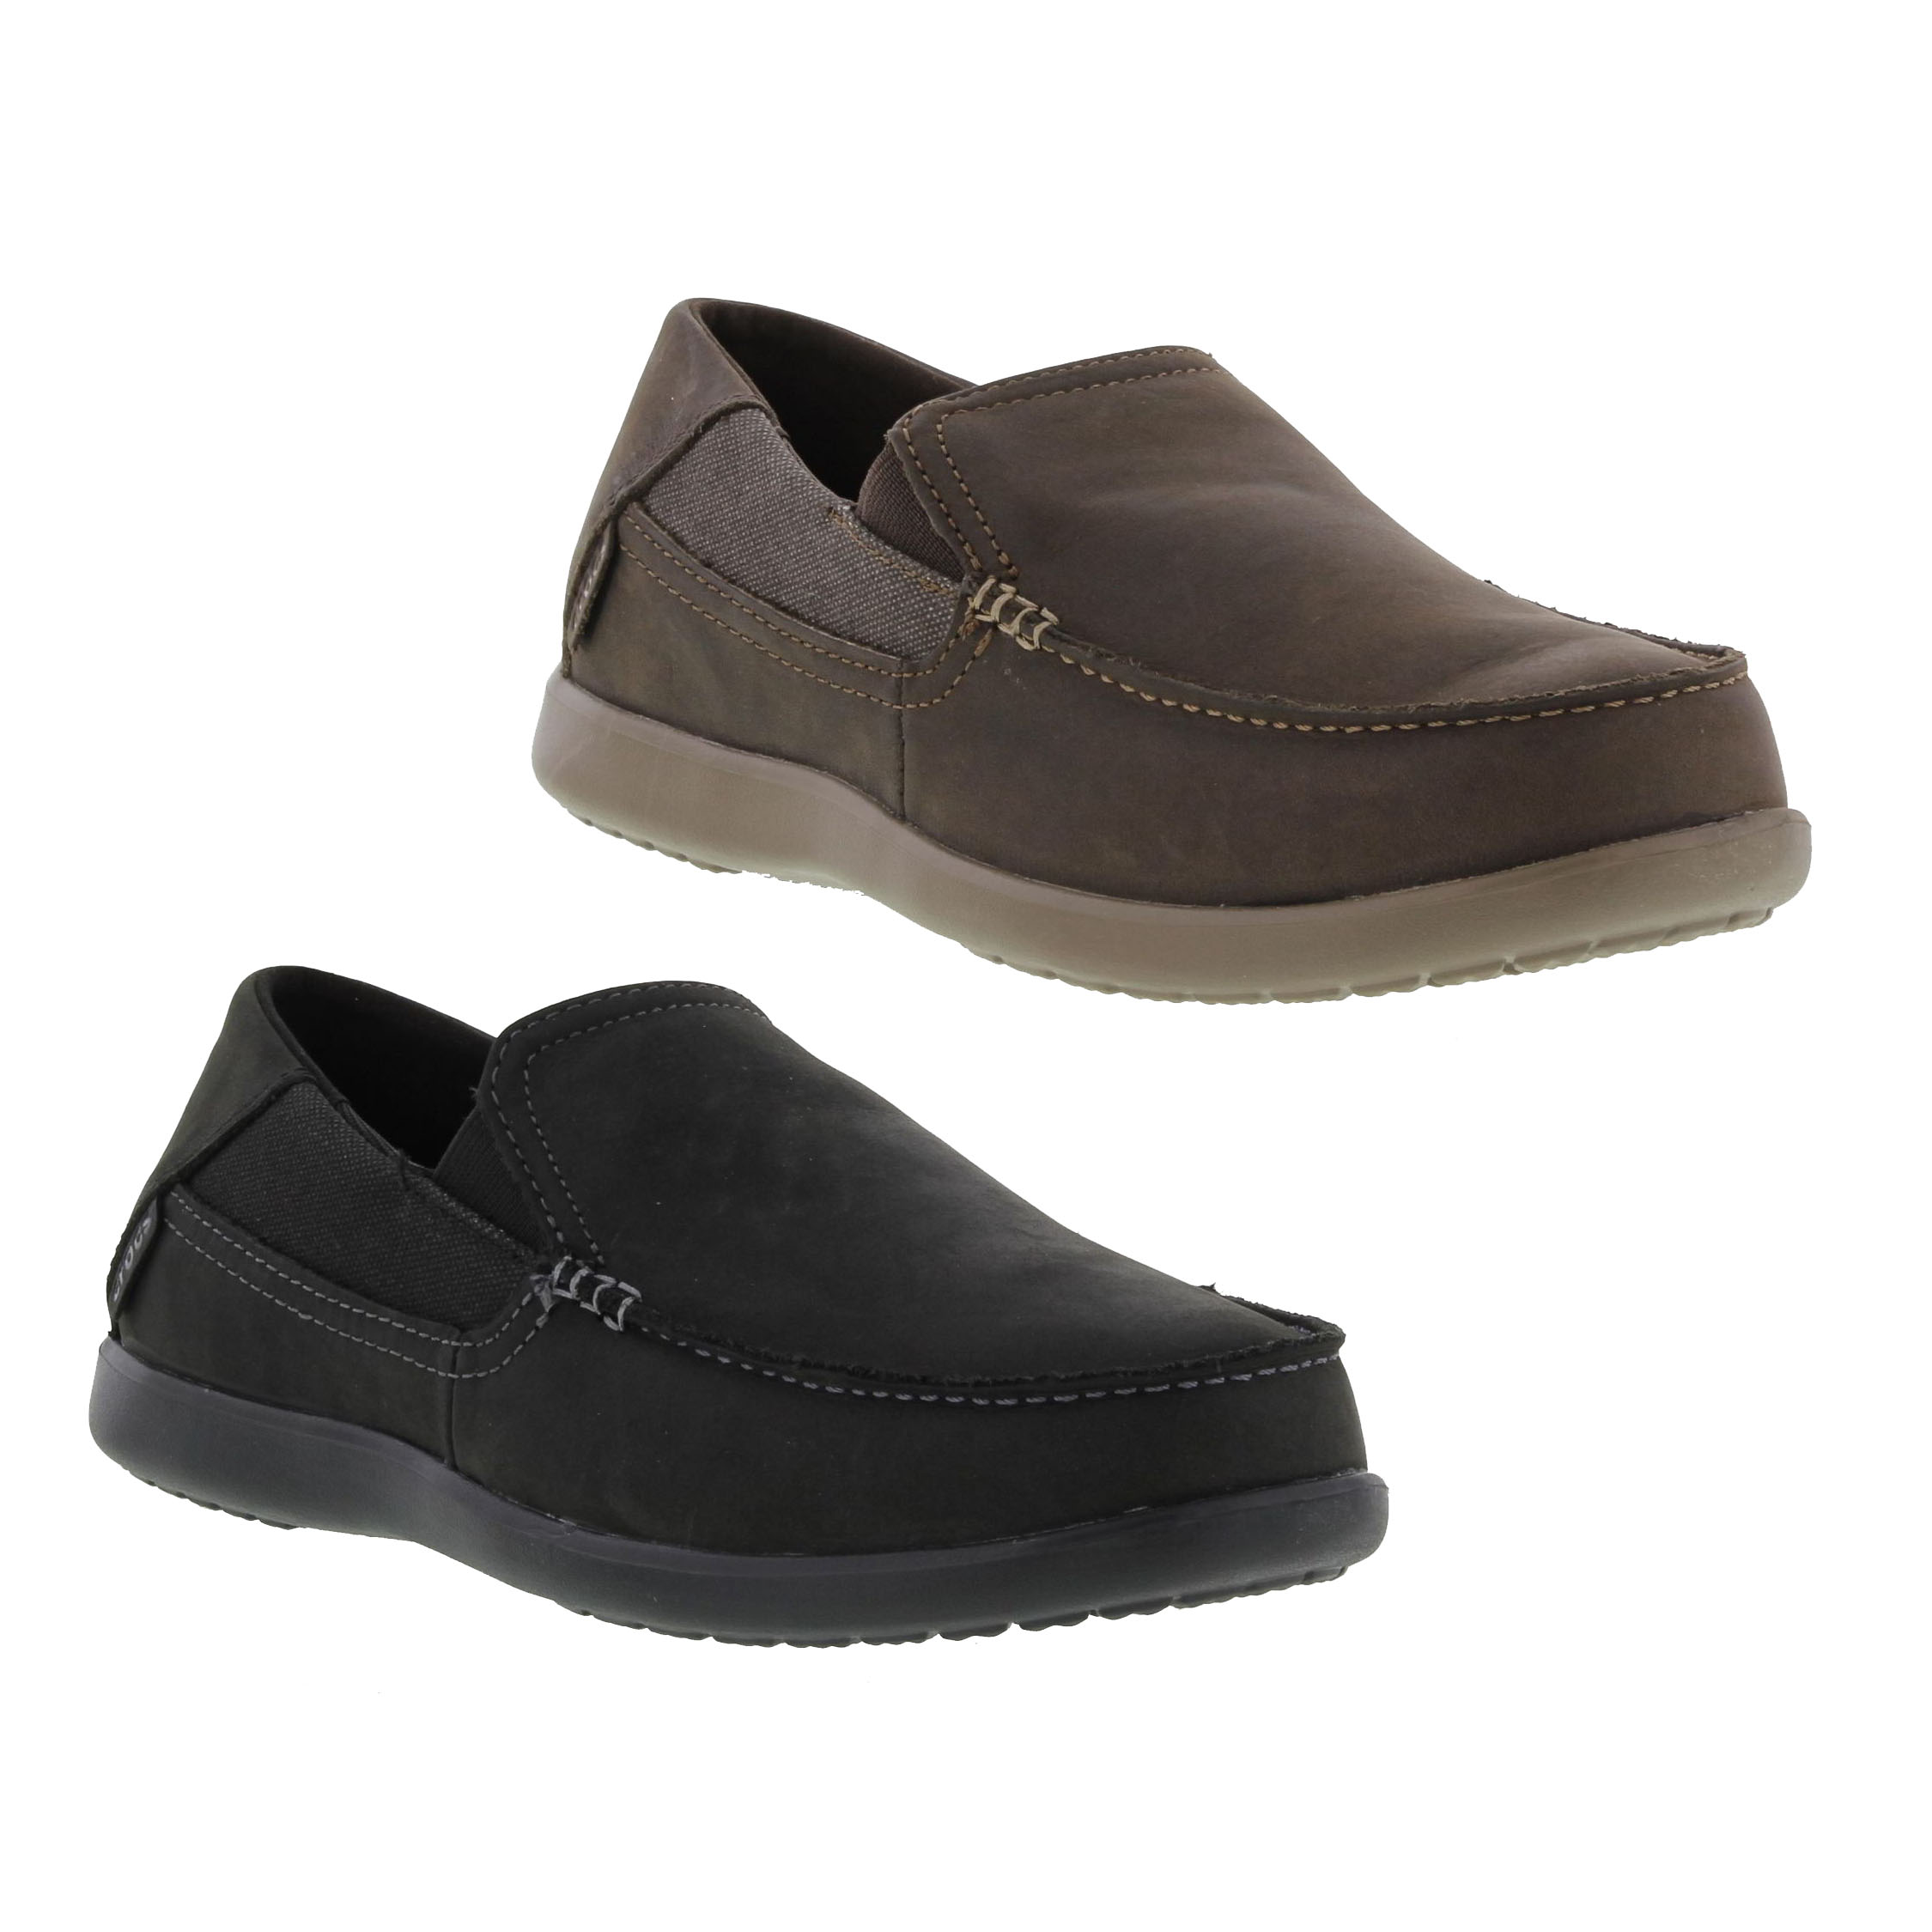 The Crocs® Santa Cruz 2 Luxe are versatile for any occasion. Updated from the original Santa Cruz, this loafer offers a canvas upper and unique stitching for a refined, casual cool look. Perfect for transition from the office to out with friends, the Santa Cruz 2 keeps you cushioned with memory foam pillows on top of Croslite™ material for /5().